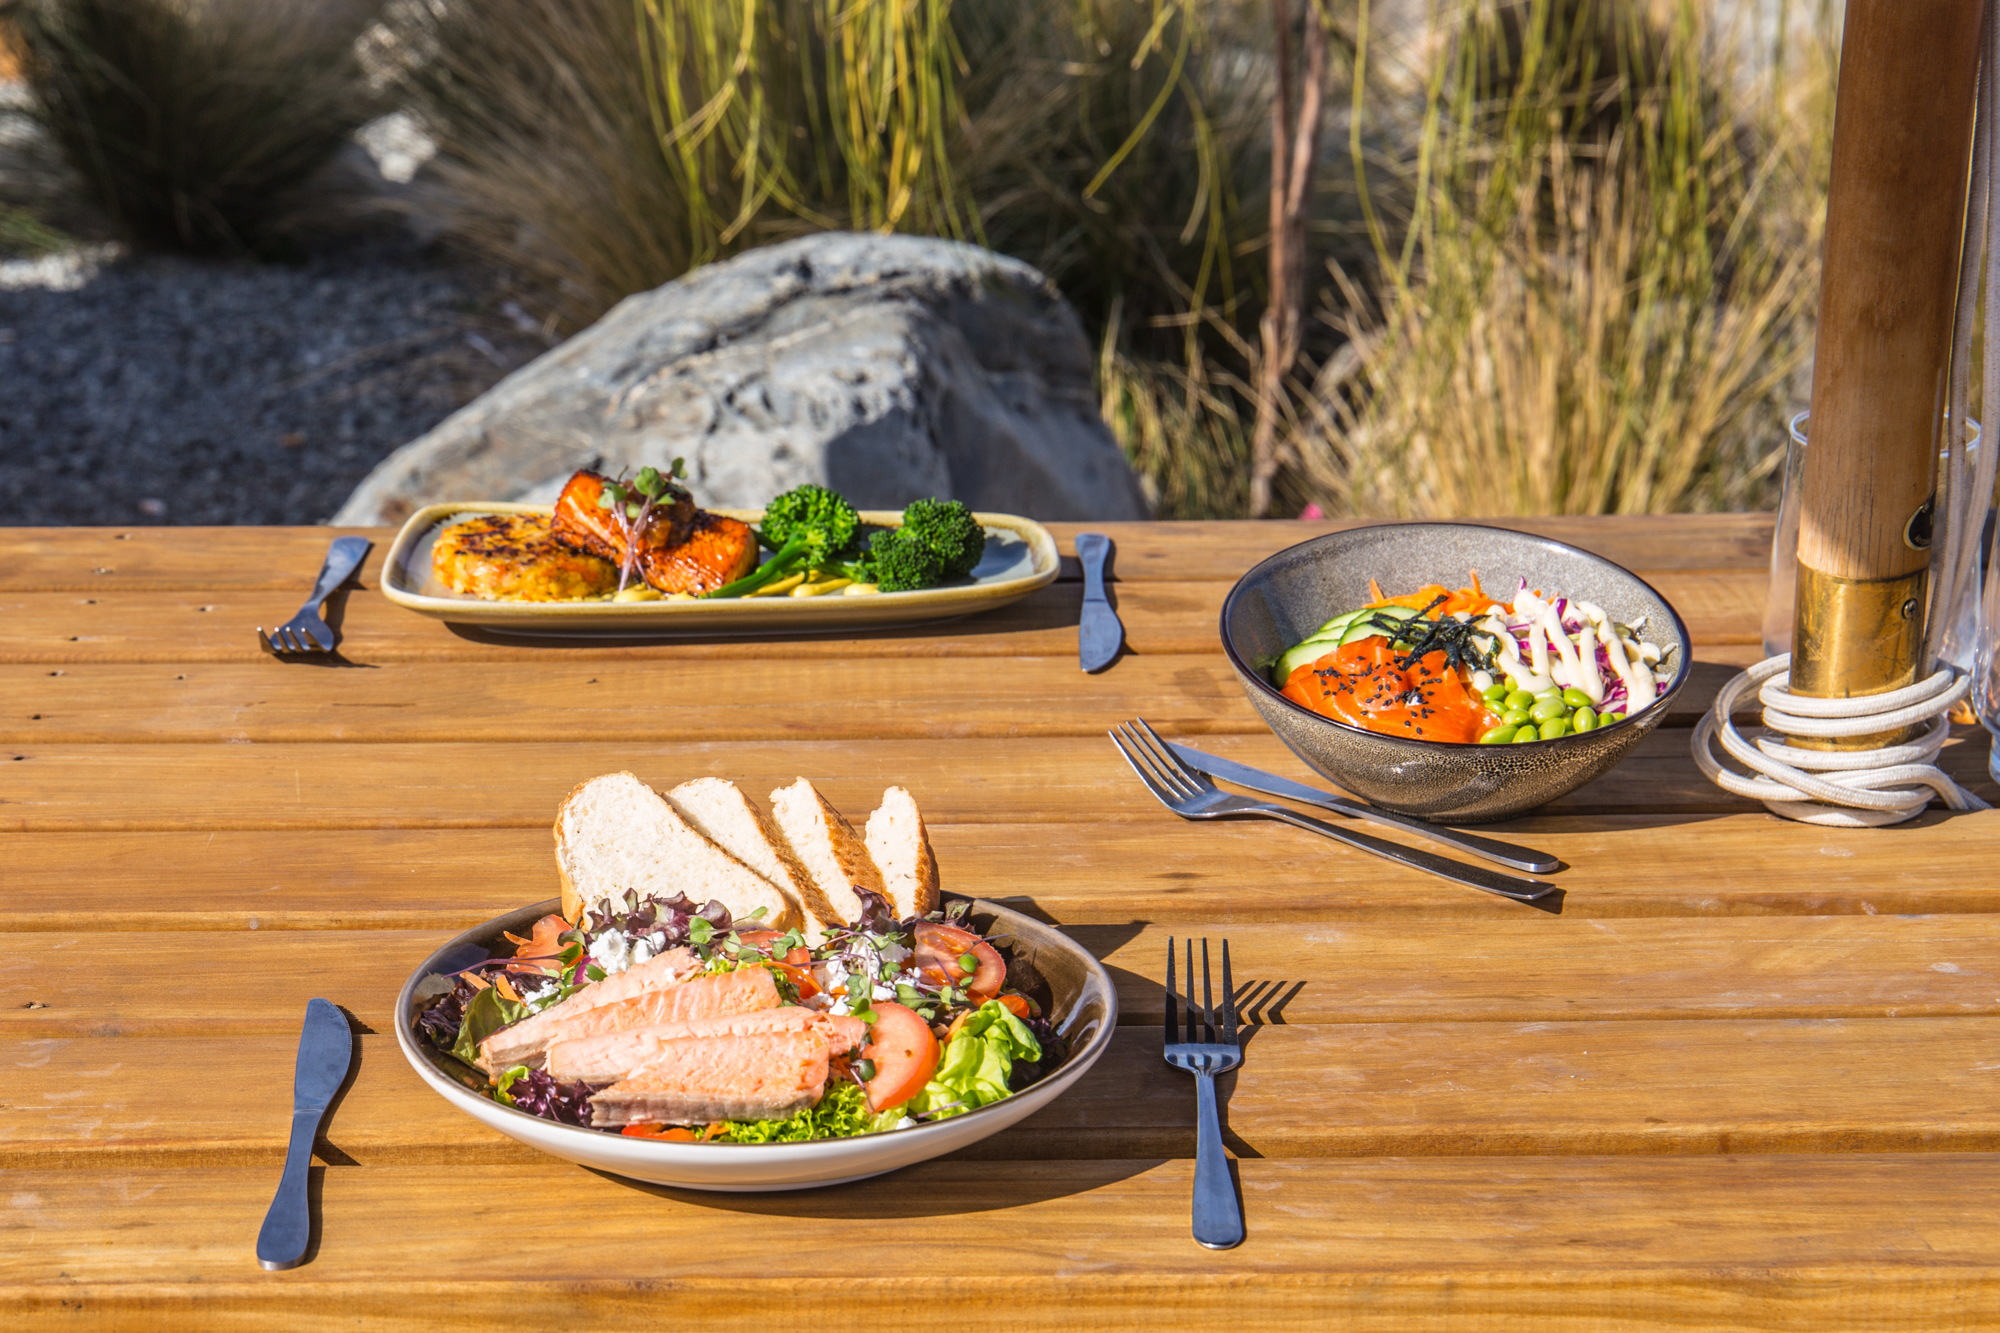 plates of fresh food on a wooden cafe table